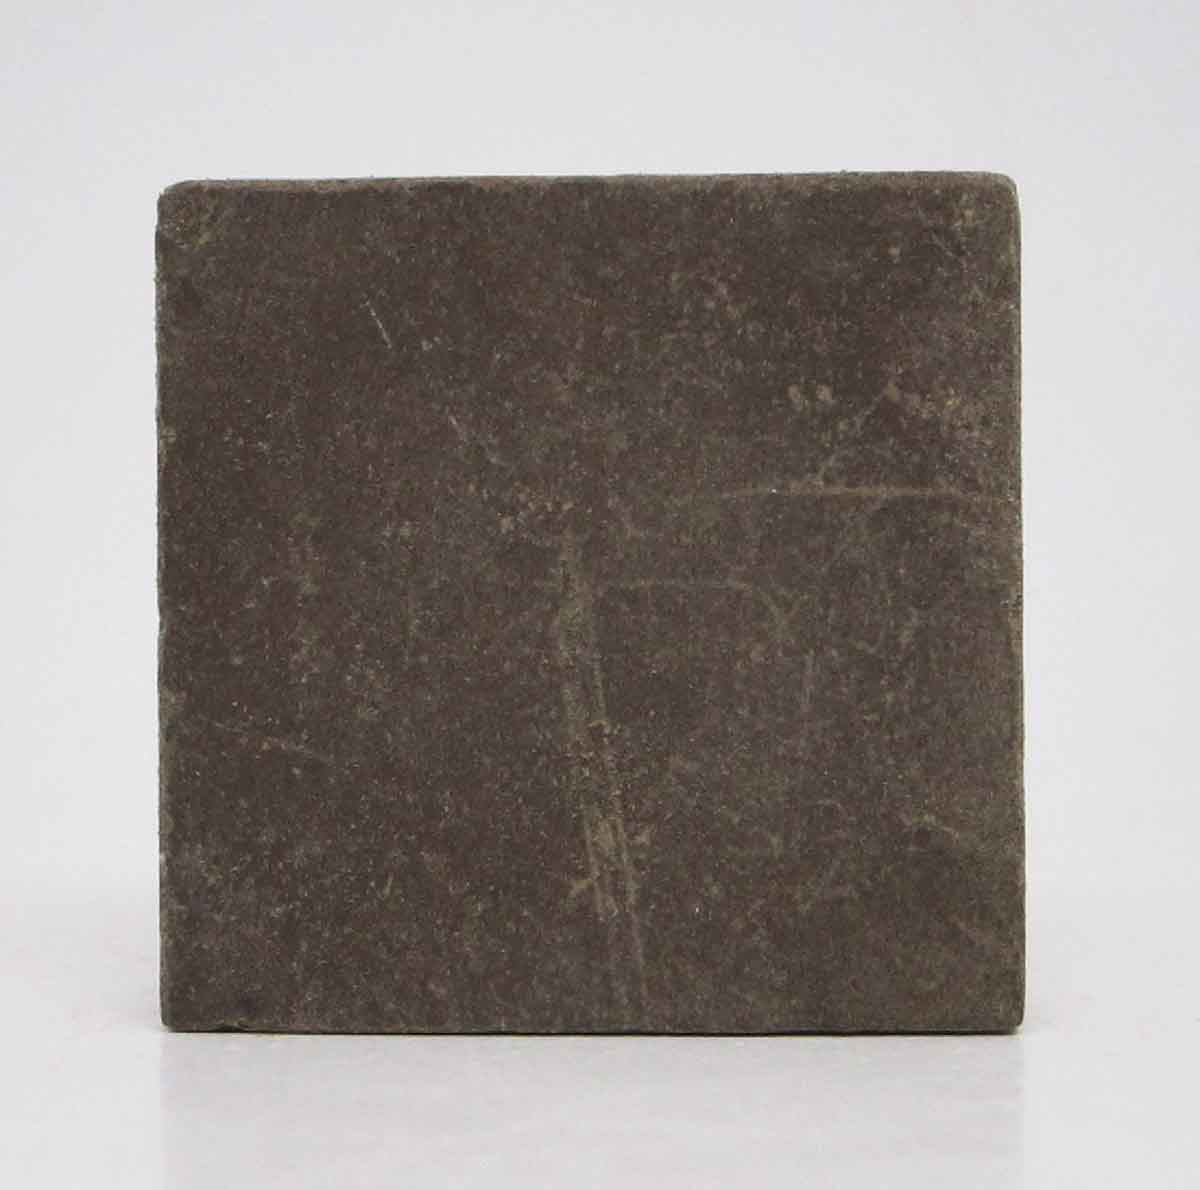 Set of Seven Brown Small Square Tiles